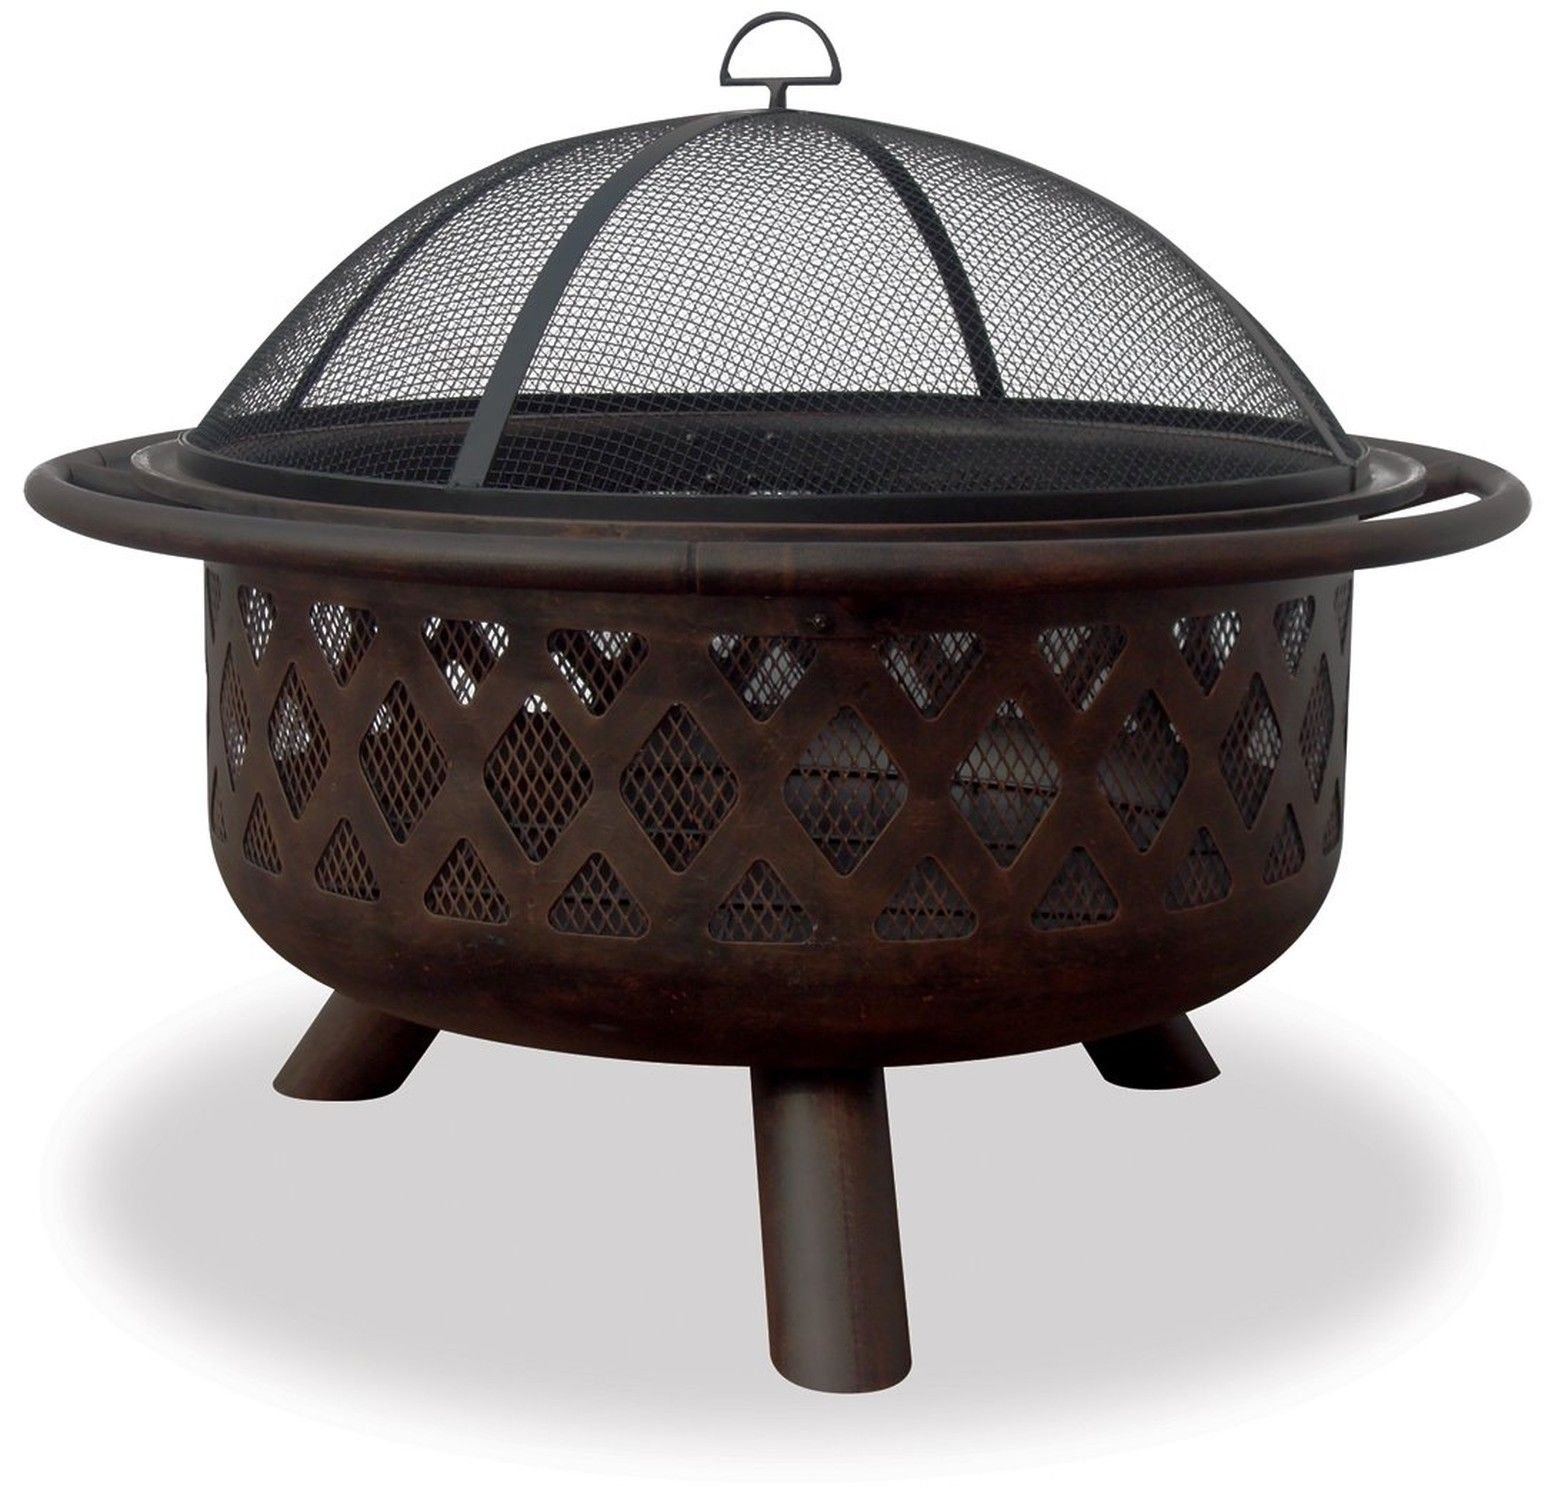 Endless Summer WAD792SP Bronze Crossweave Firebowl Fire Pit New ..#G4E435T1 34452-3T395618 by itonotry